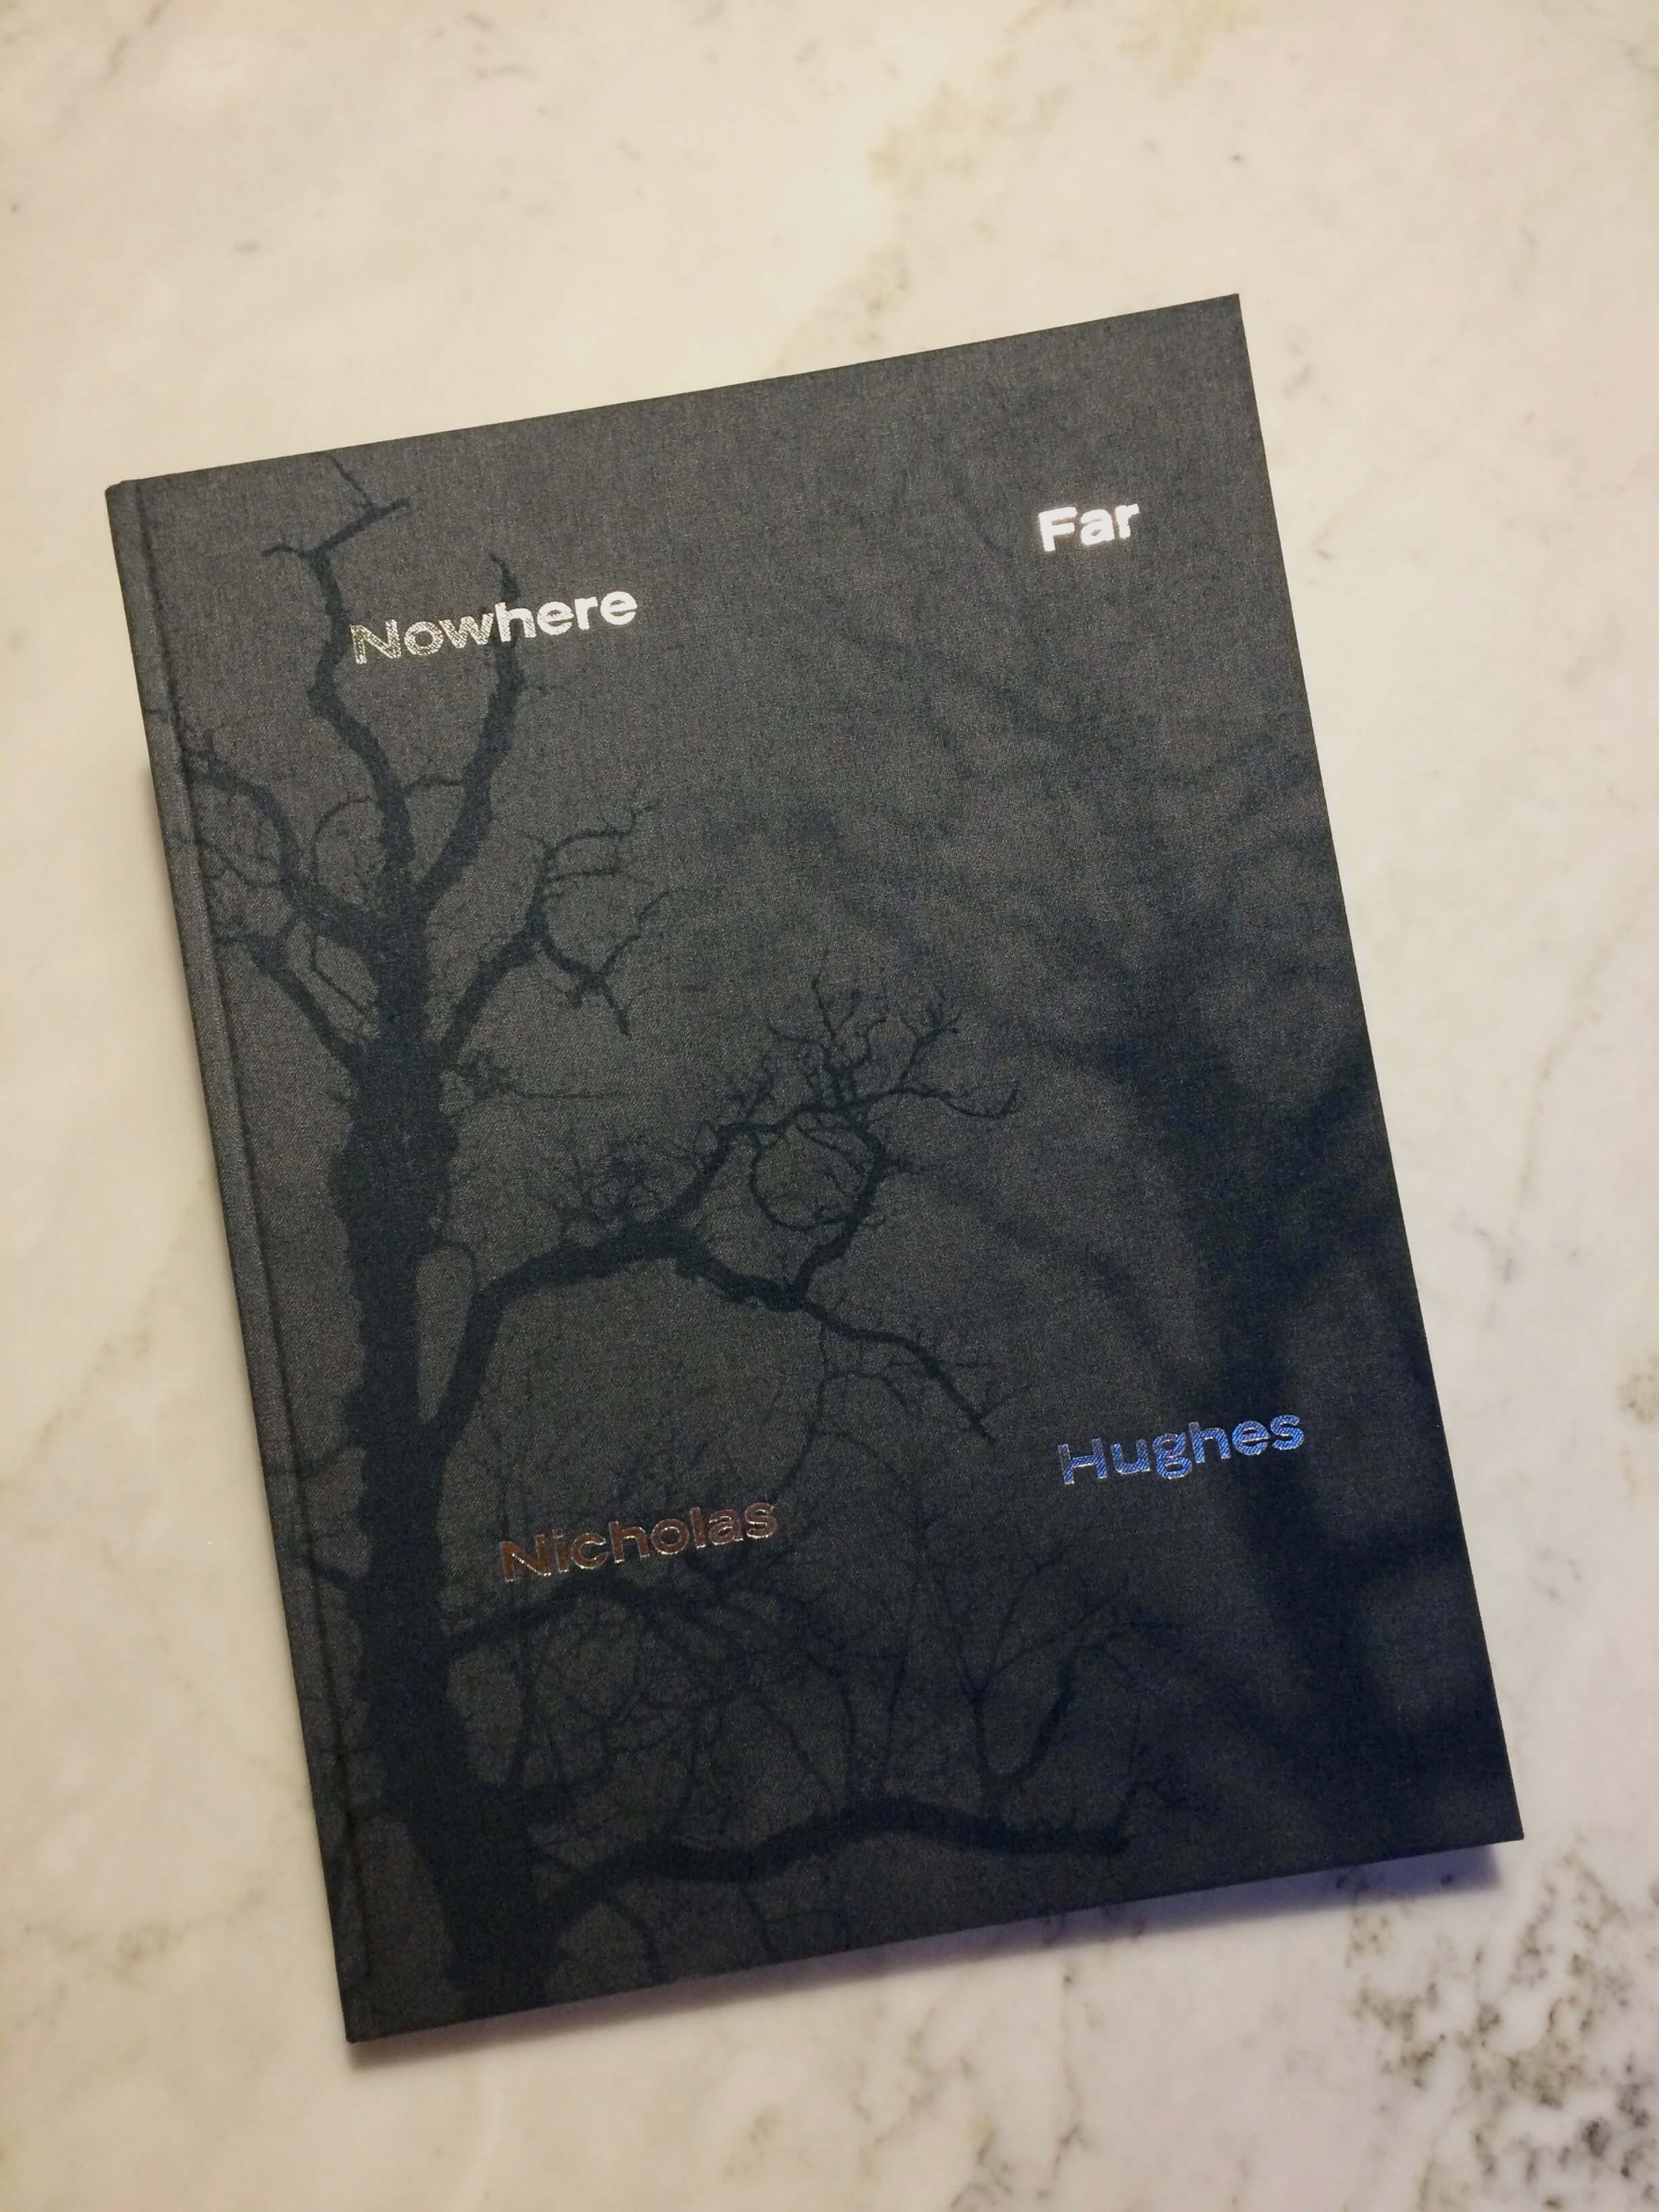 Nicholas Hughes, Nowher Far, photography book cover, Photography, Landscape